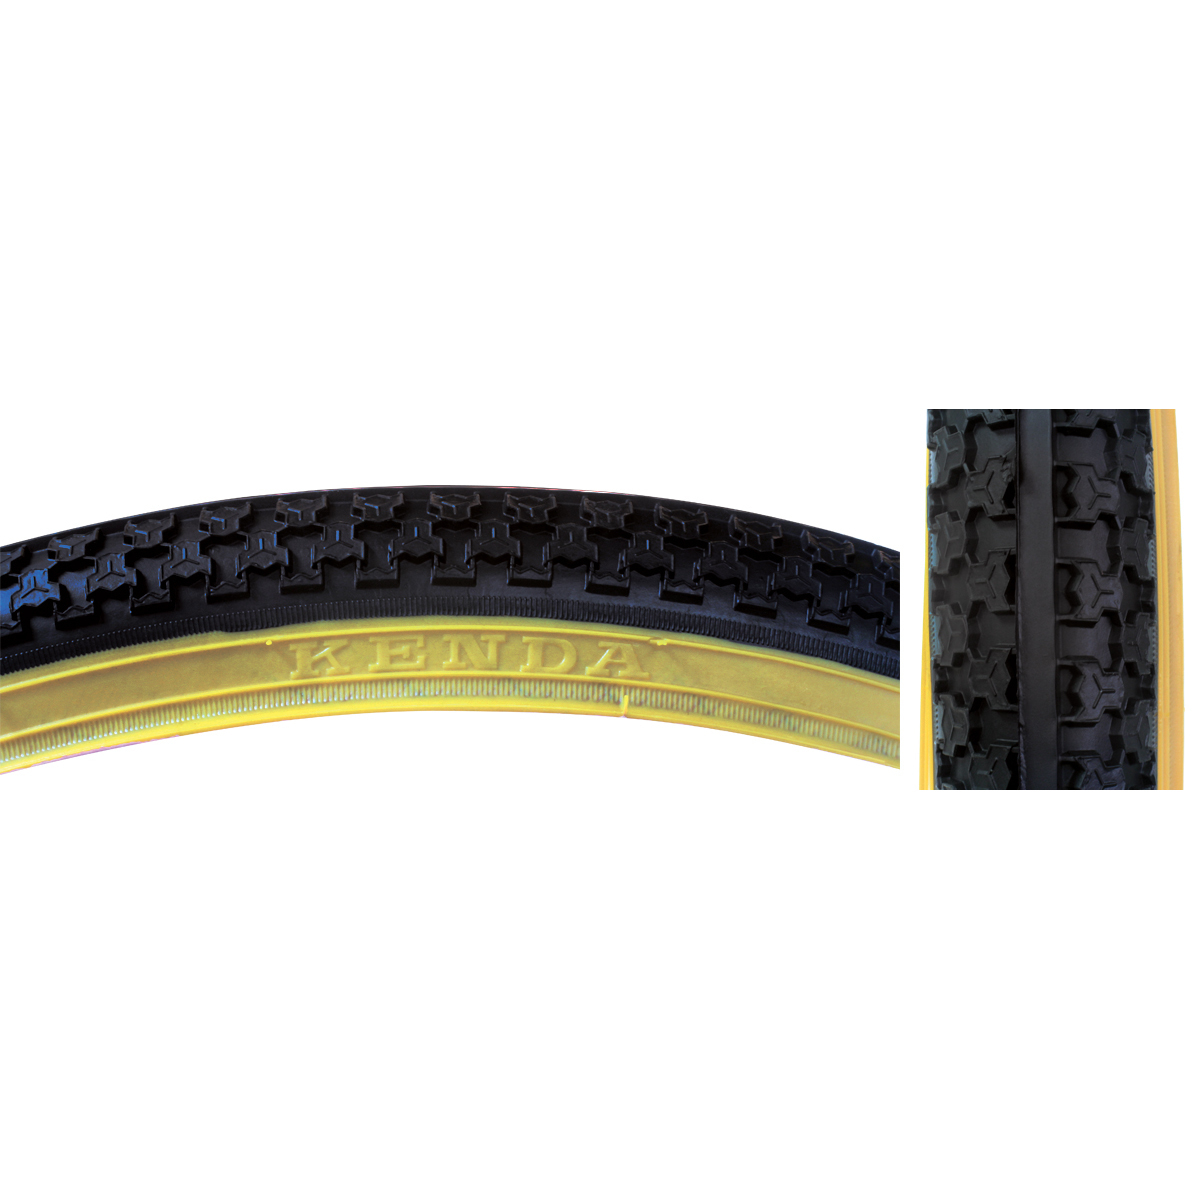 Sunlite Tire 26X1.75 Black/Gm Raised Ctr K5